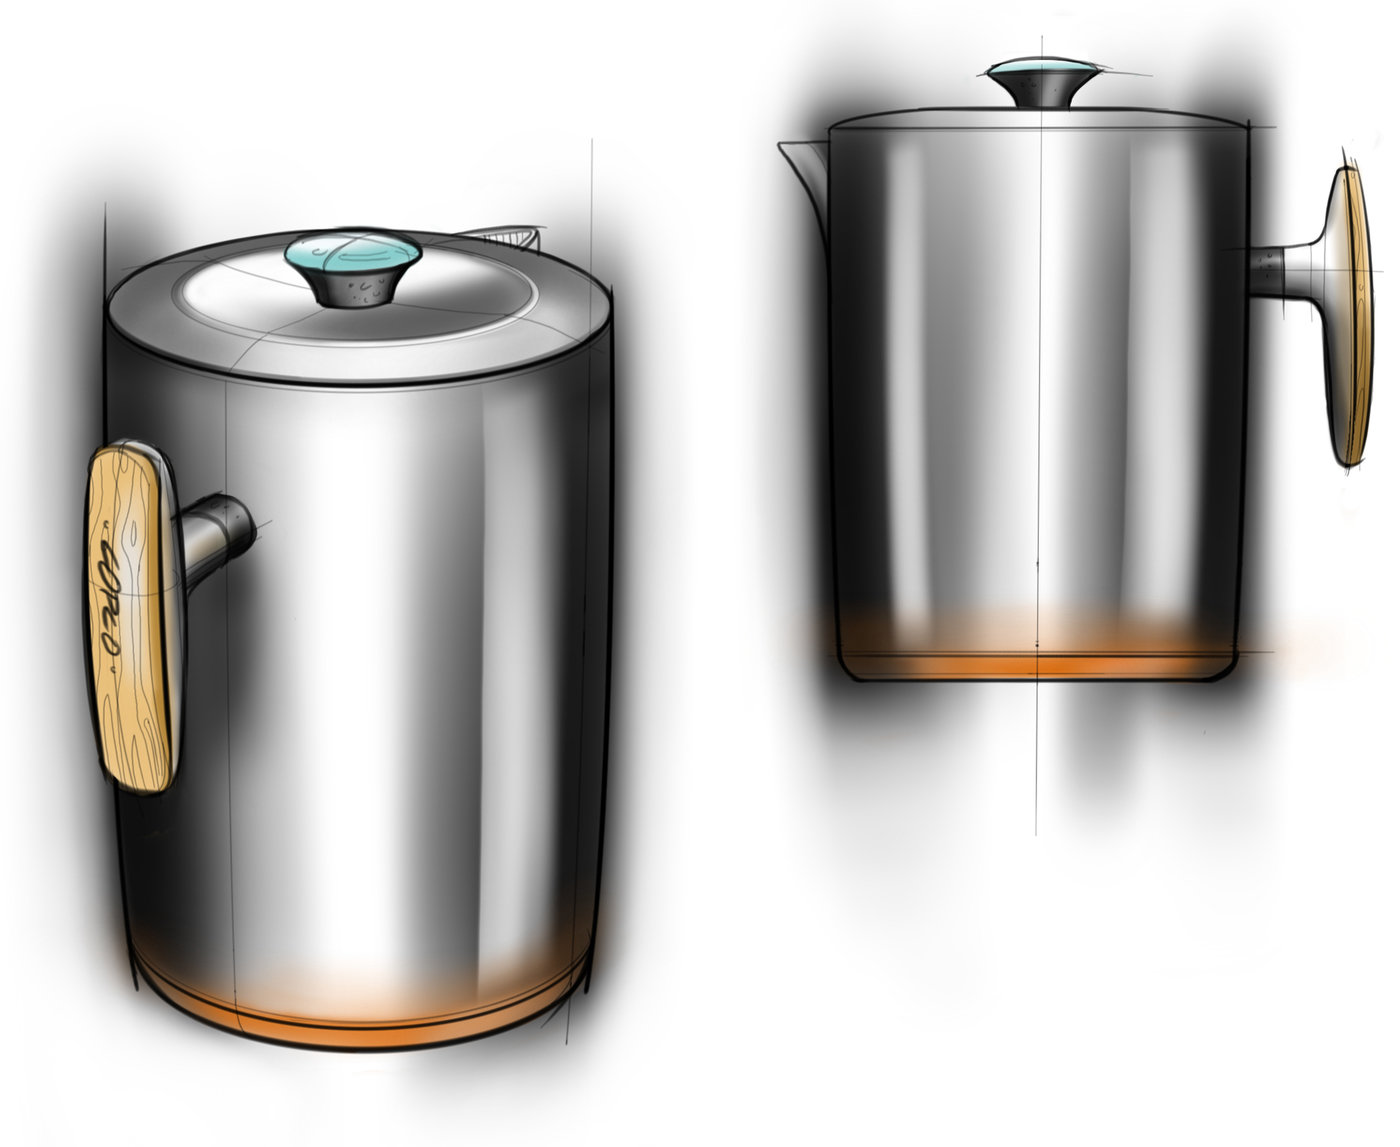 Product Sketching Amp 2d Rendering By Mason Umholtz At